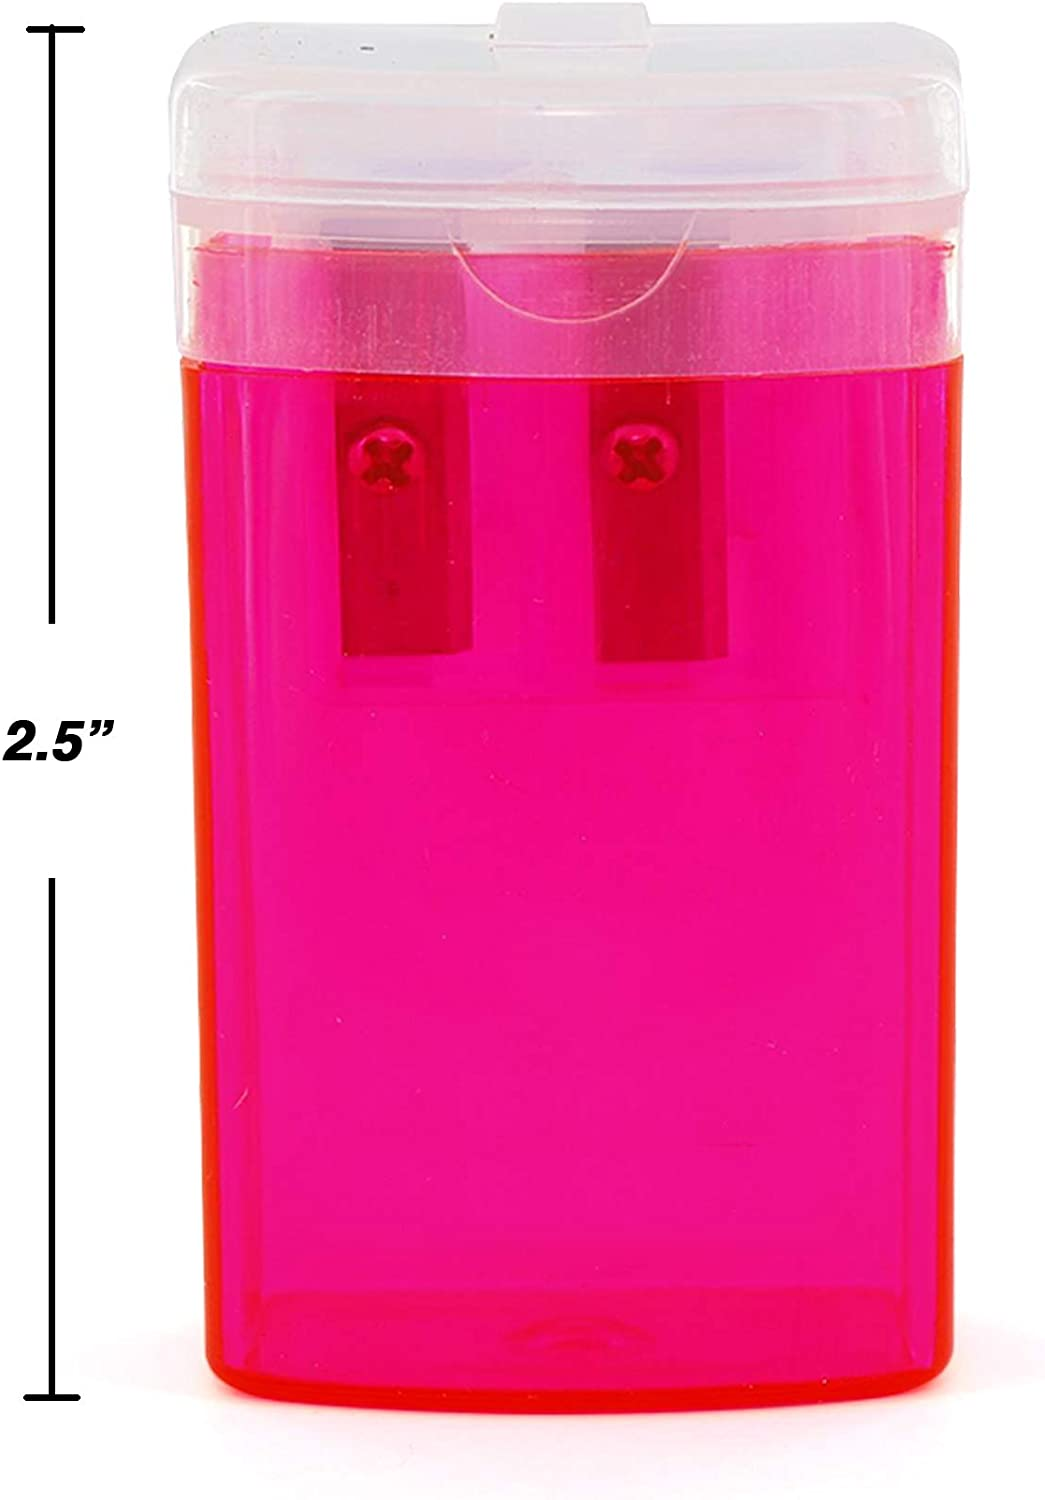 Pink /& Black Great for School Home /& Office 12 Pack Green Emraw Dual Hole Manual Pencil Sharpener with Lid /& Rectangular Receptacle to Catch Shavings for Regular /& Oversize Pencils//Crayons in Blue